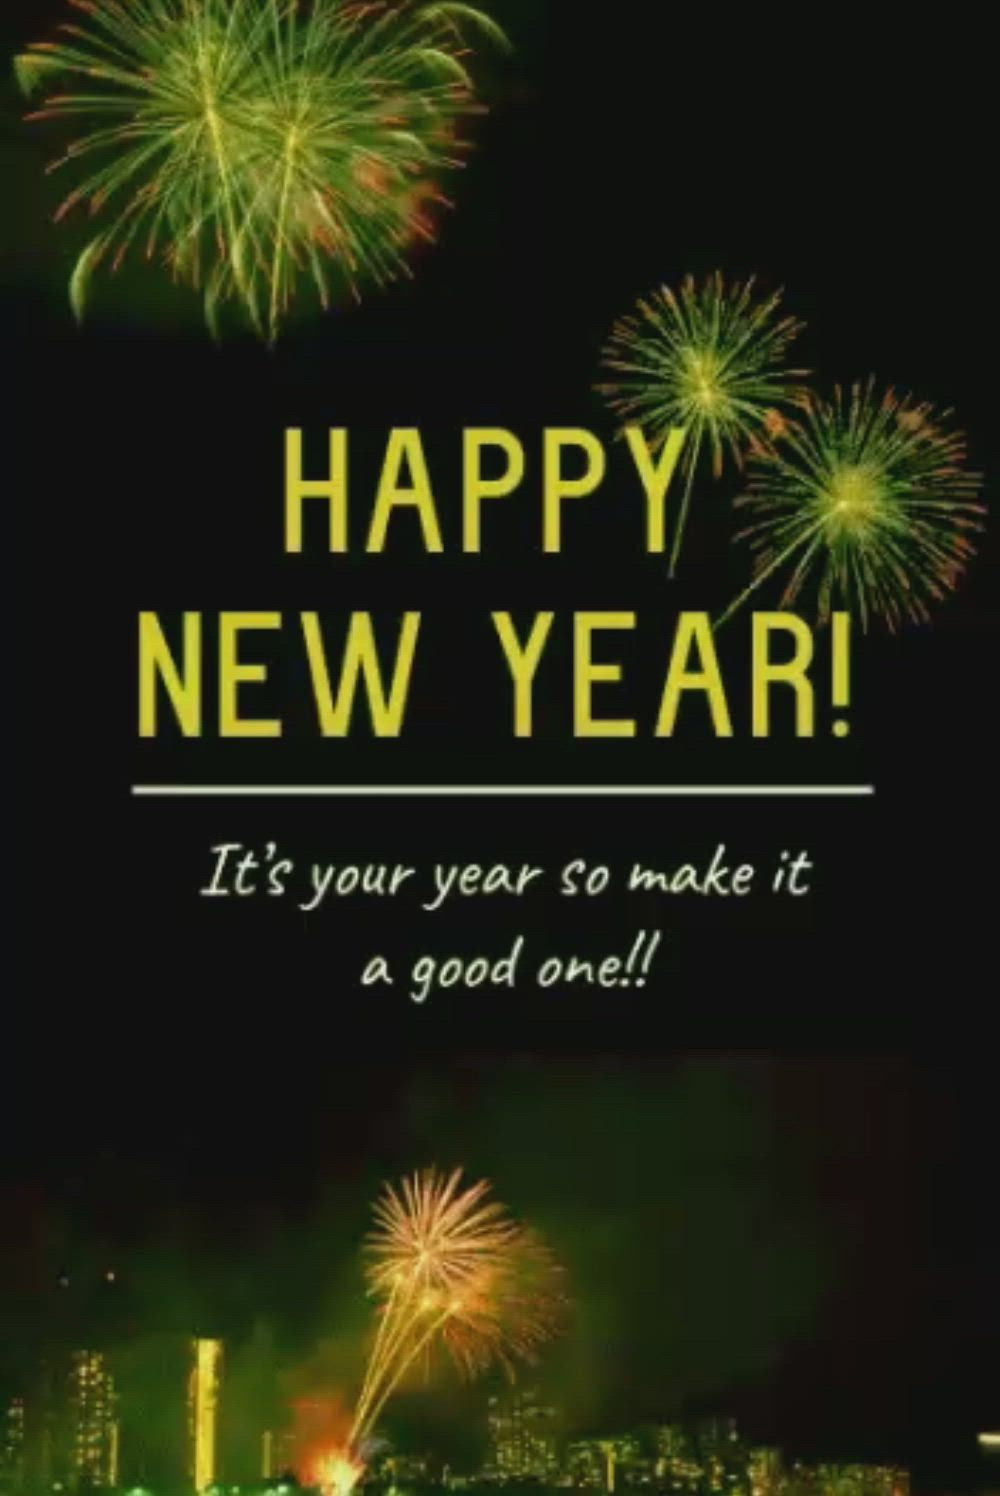 Best 10 Happy New Year Wishes Images Gif Wishes Image Happy New Year Photography Video In 2020 Happy New Year Photo Happy New Year Wishes New Year Wishes Images